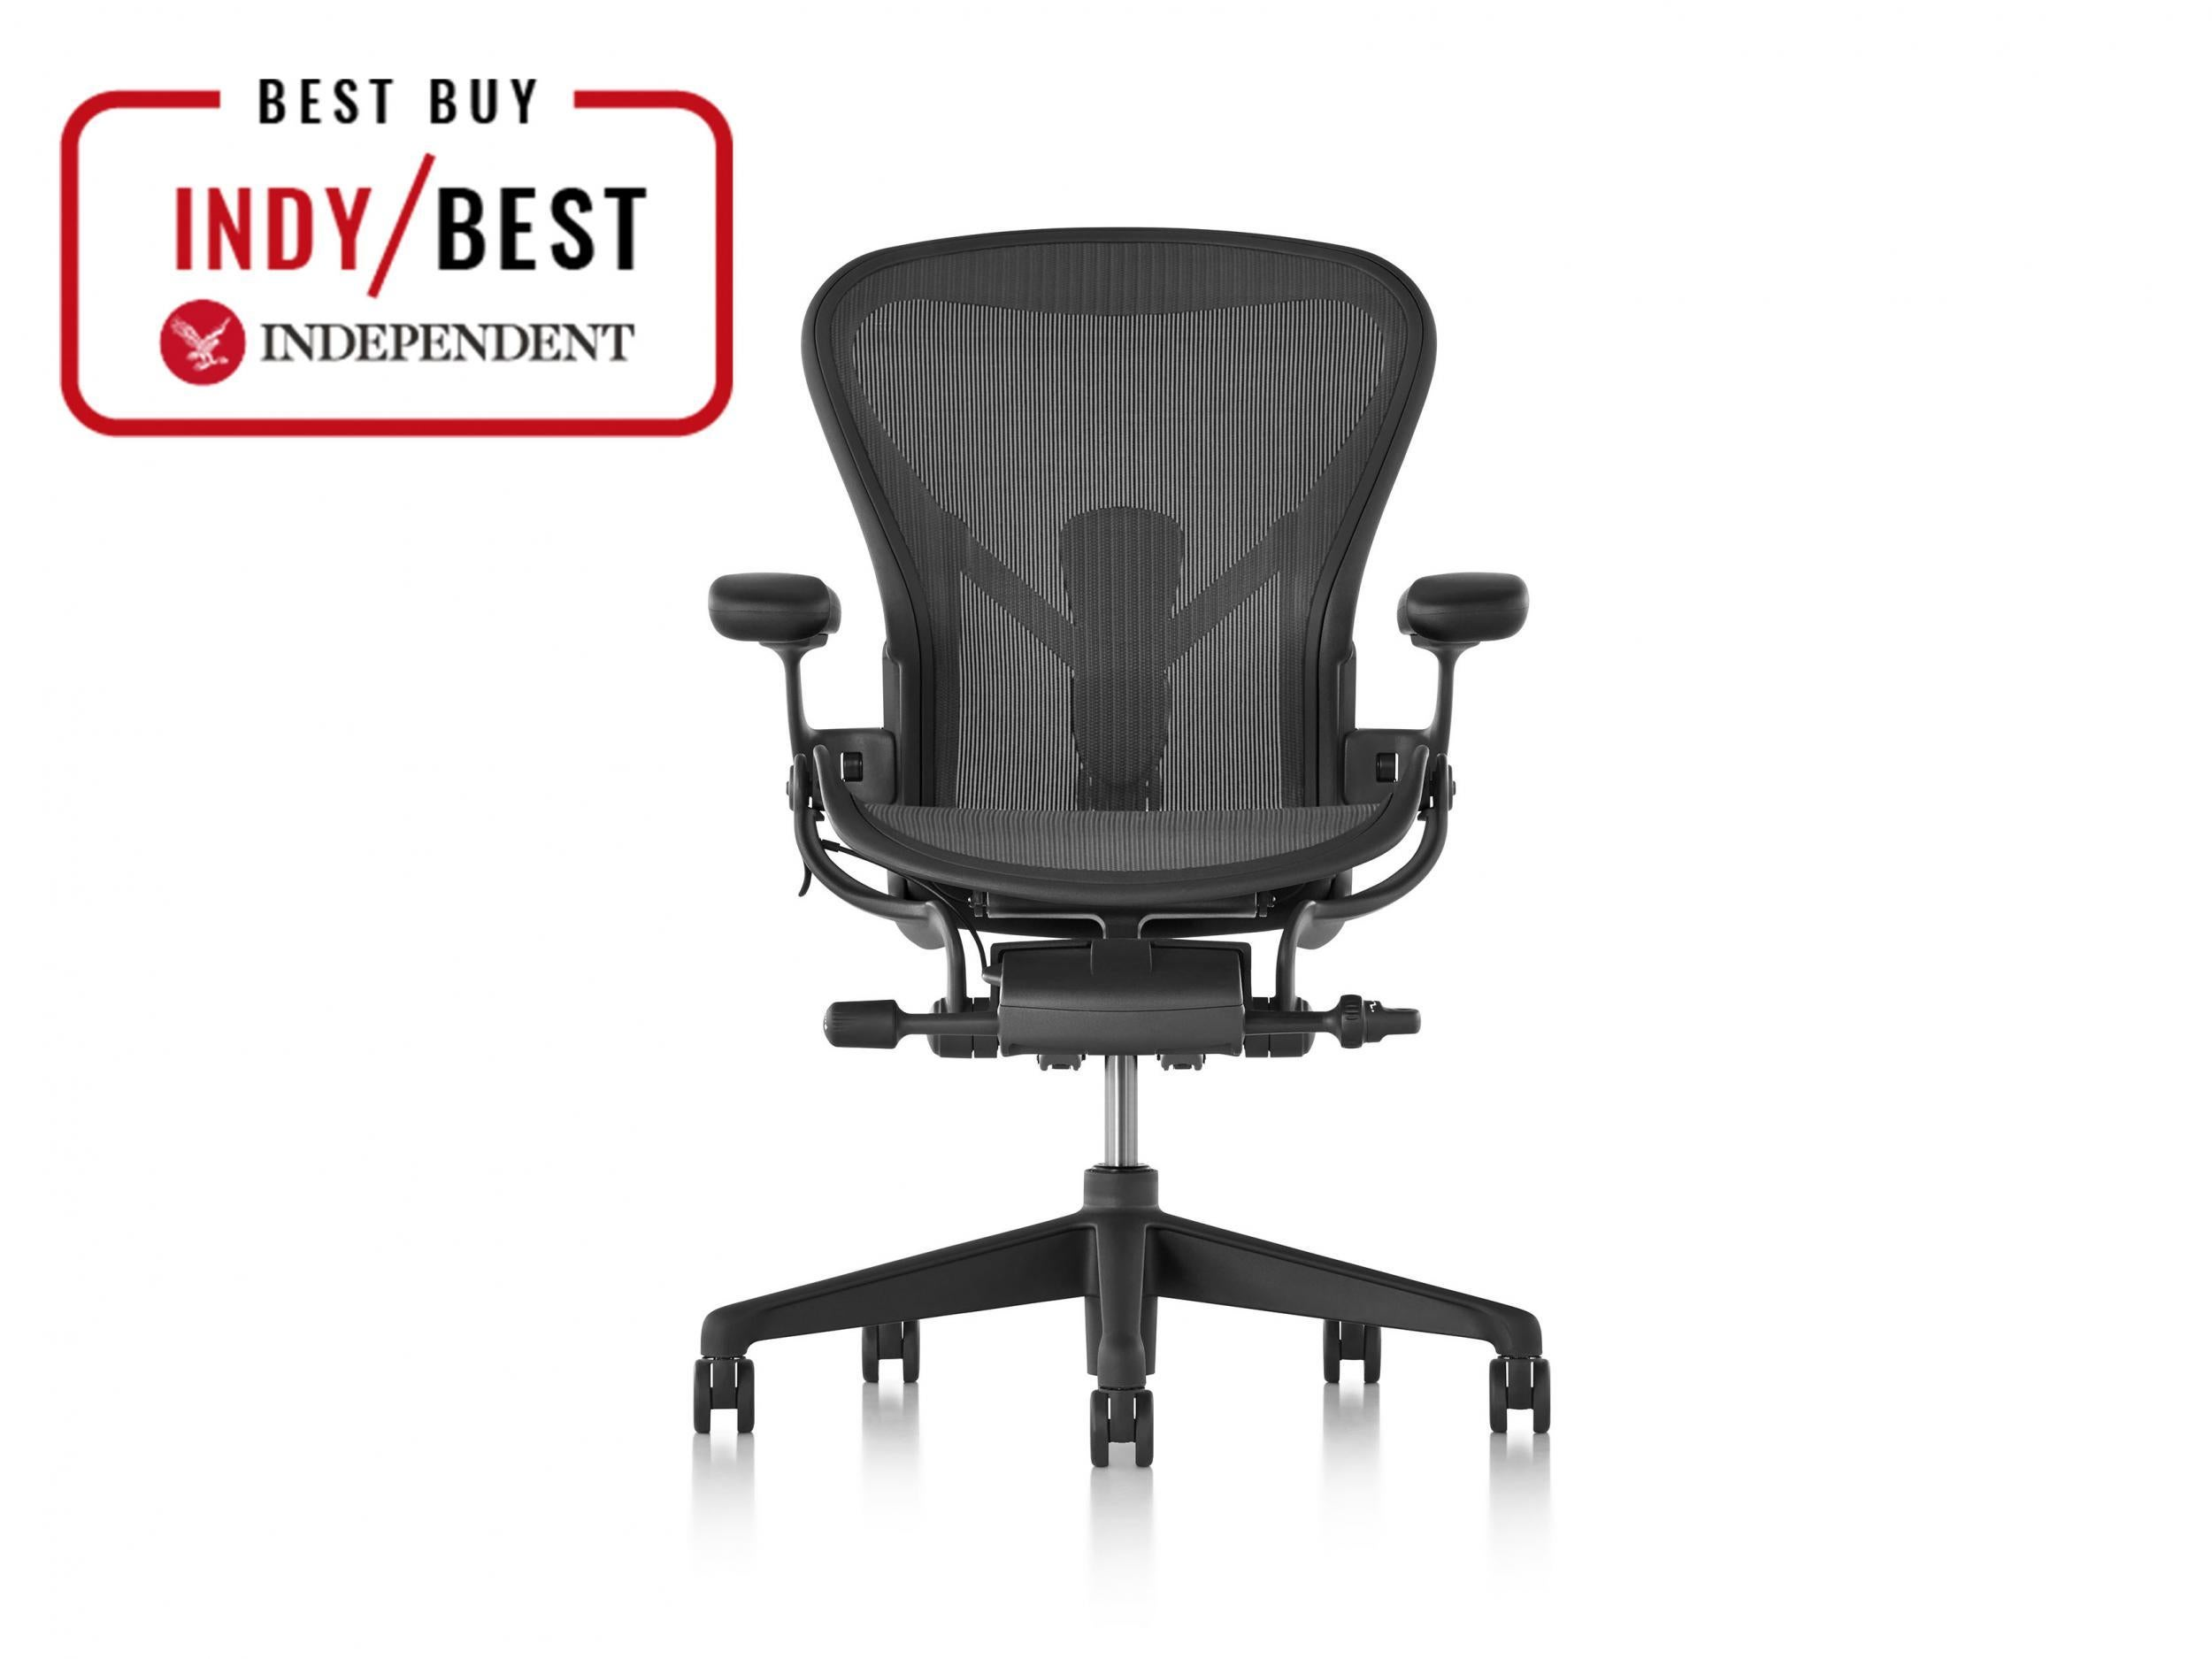 The original herman miller aeron desk chair